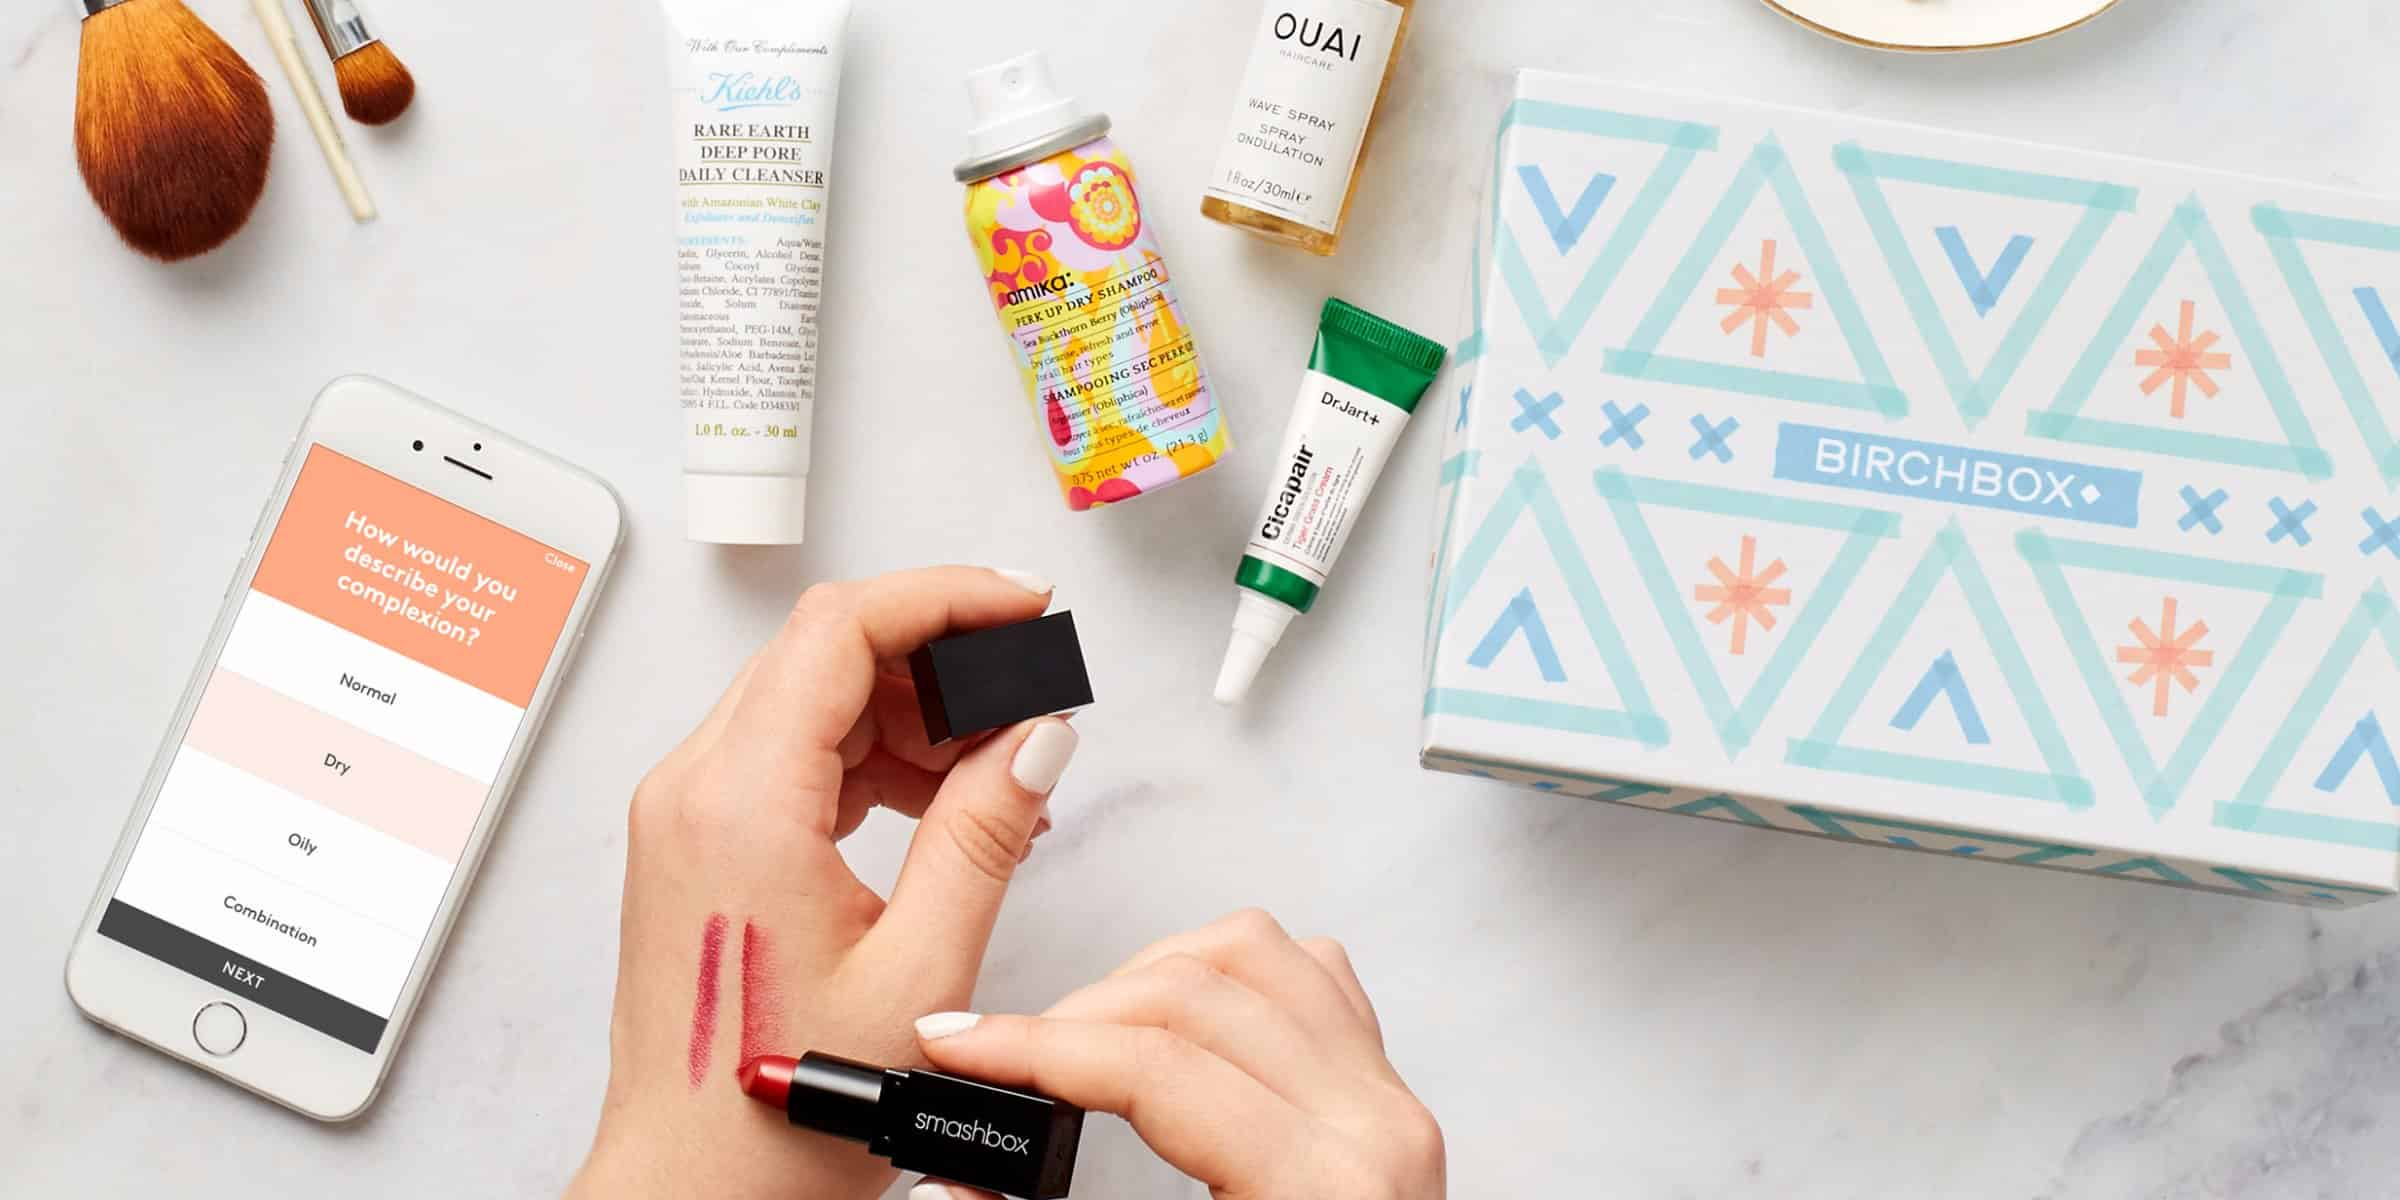 How Birchbox Boosted In‑App Sales By More Than 211%